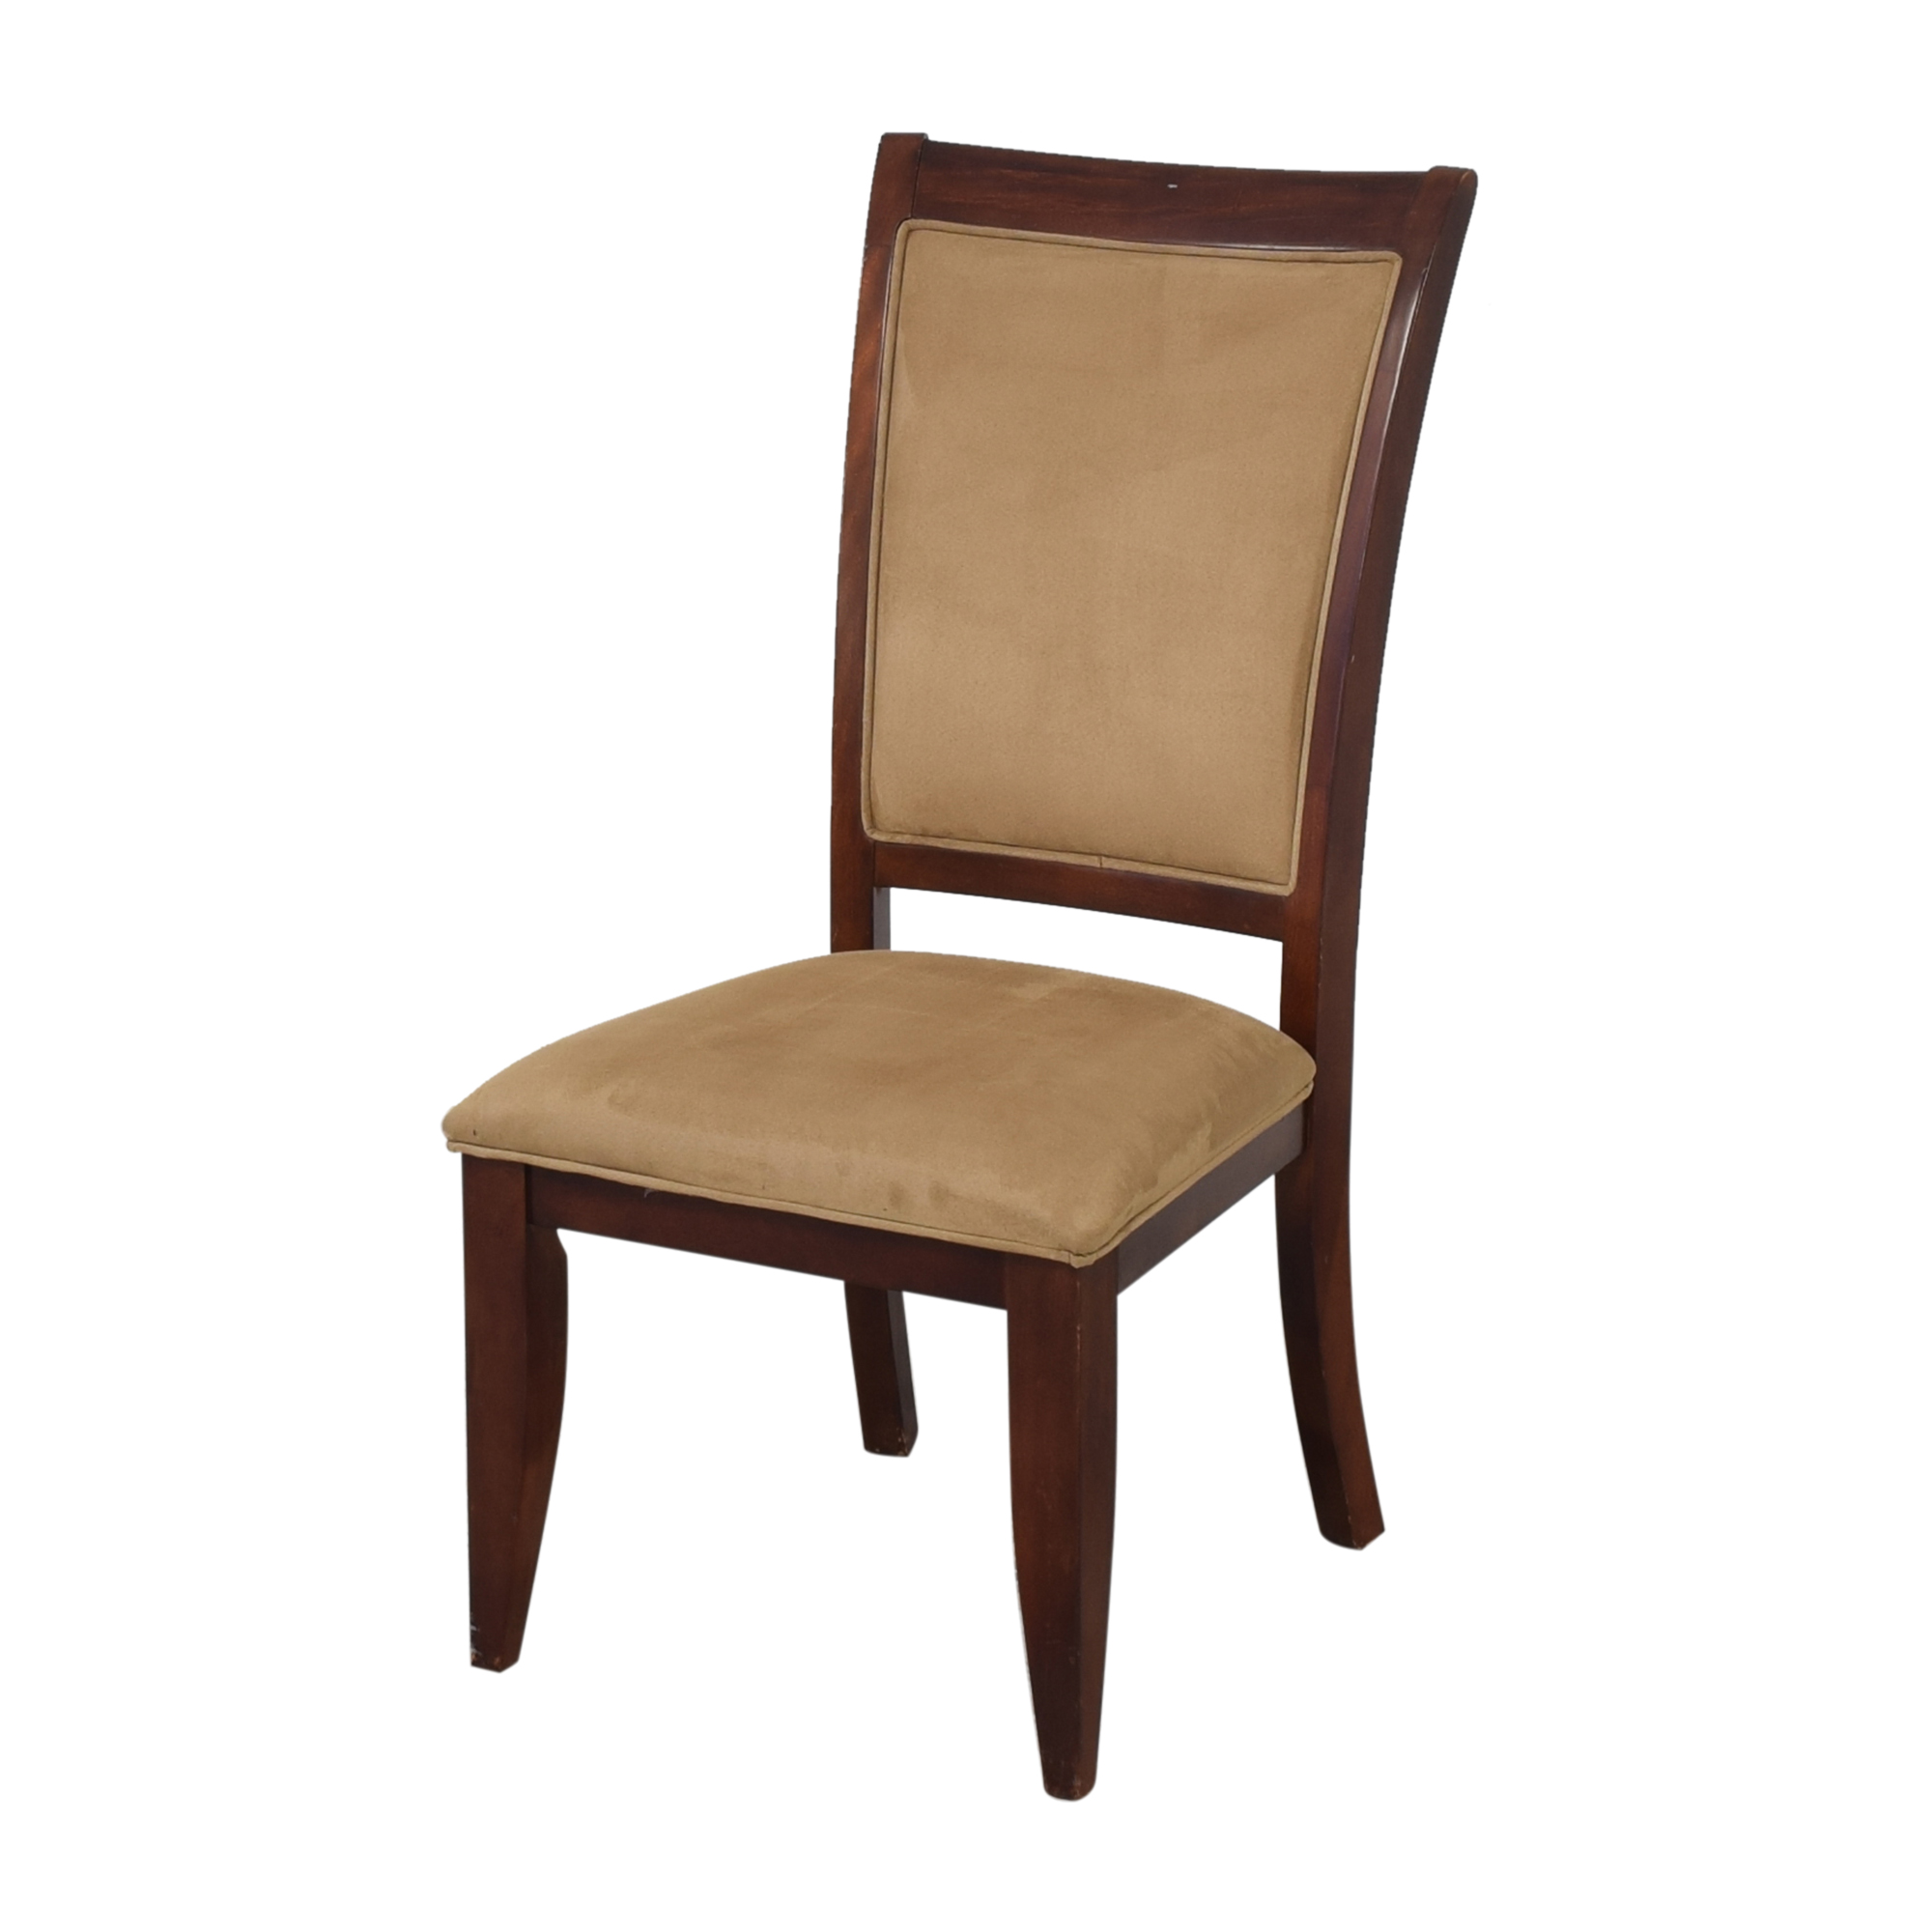 shop Legacy Classic Furniture Legacy Classic Upholstered Dining Chairs online